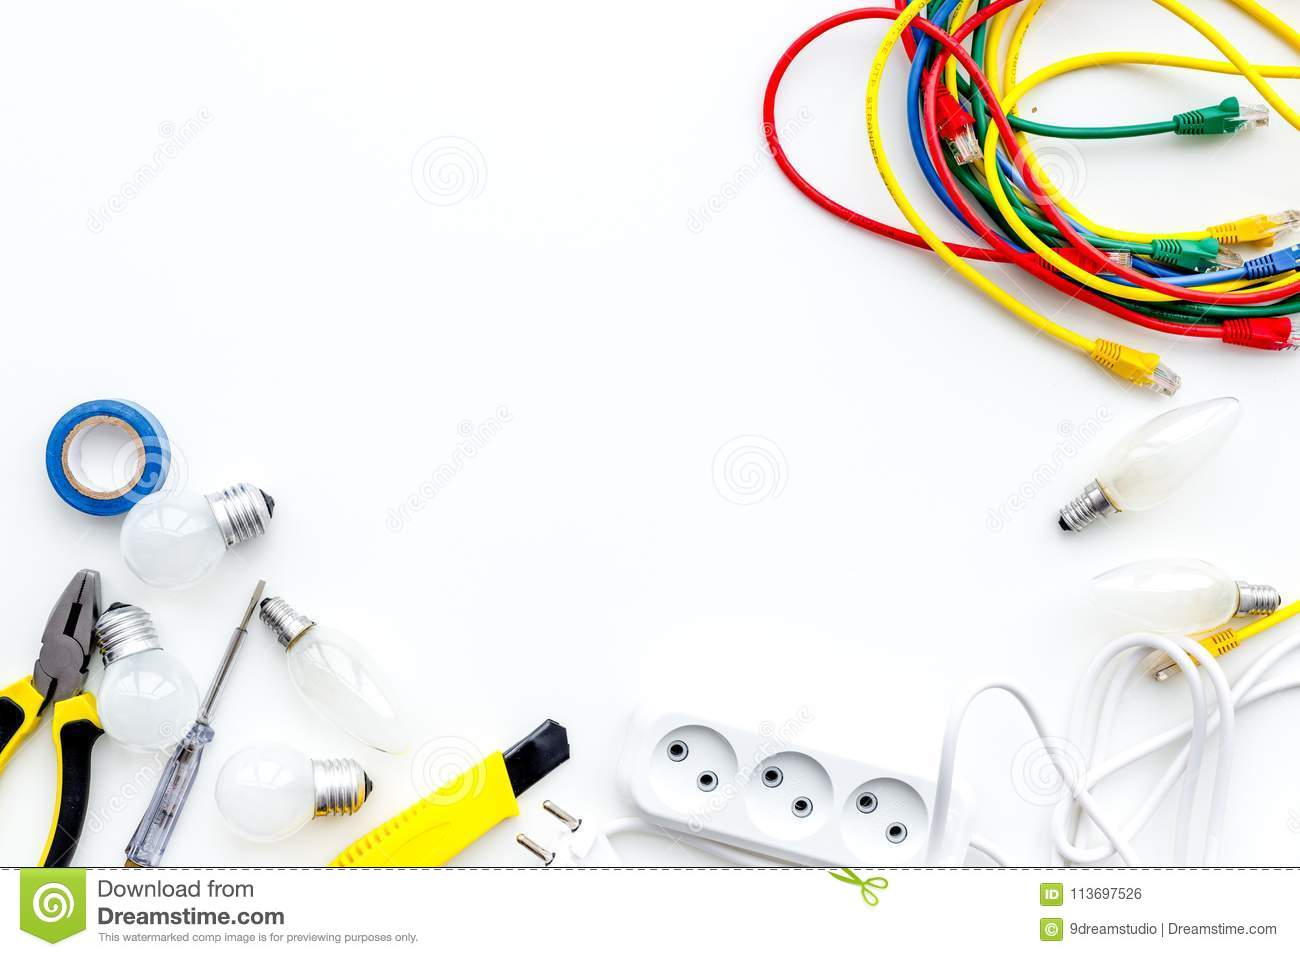 Electrical Installation Wiring Works Tools Cabel And Socket For Outlet On White Background Top